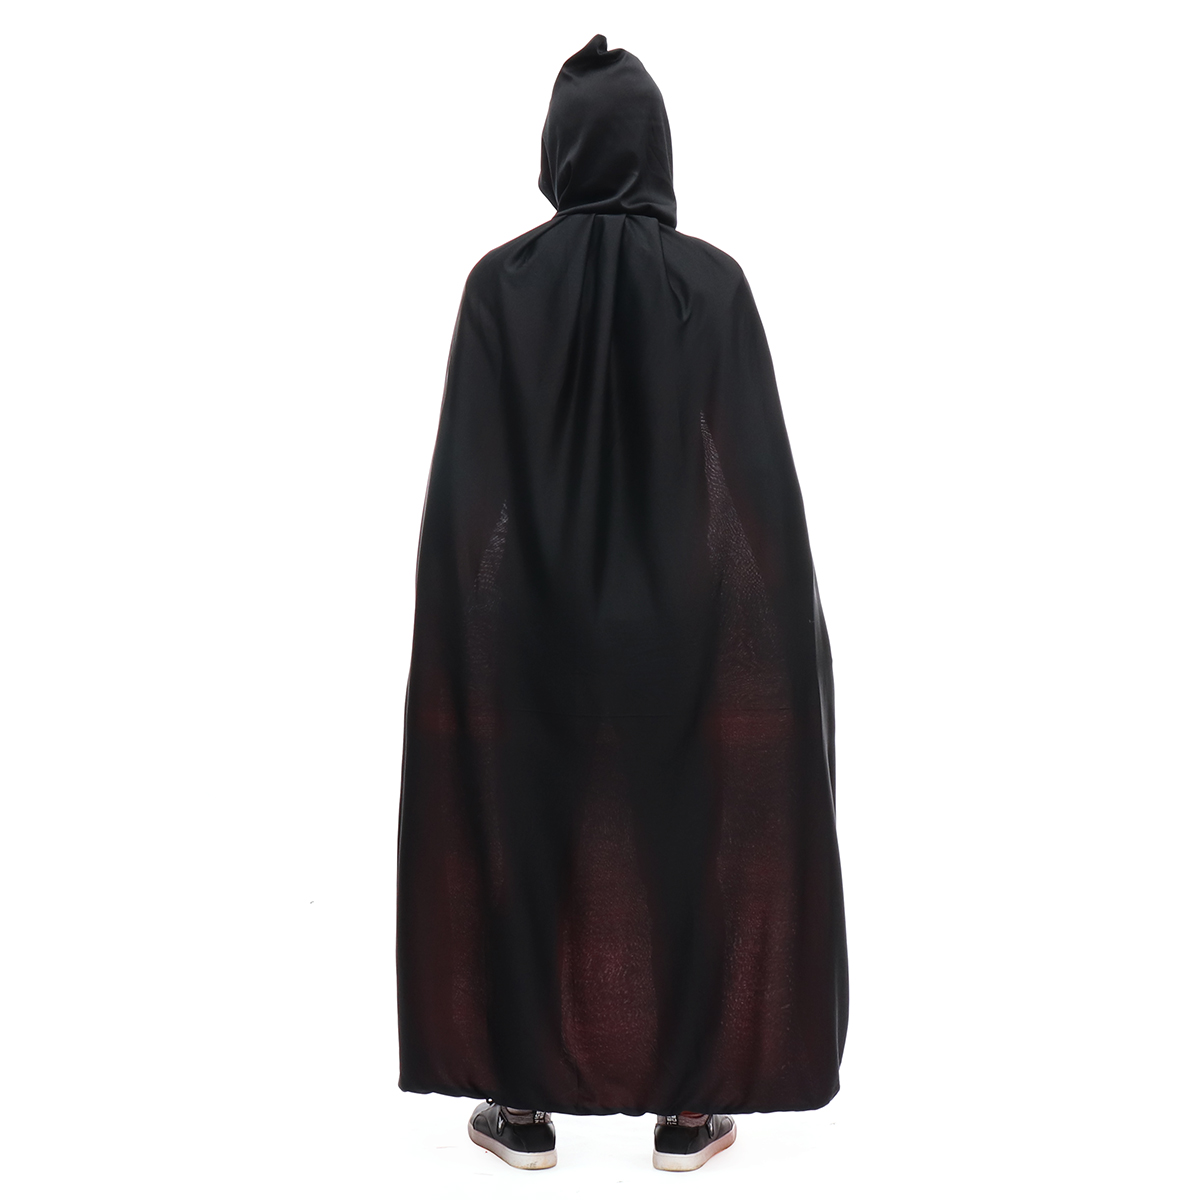 Halloween Hooded Cape Adult Unisex Long Cloak Black Costume Dress Black/Red 2 Sides